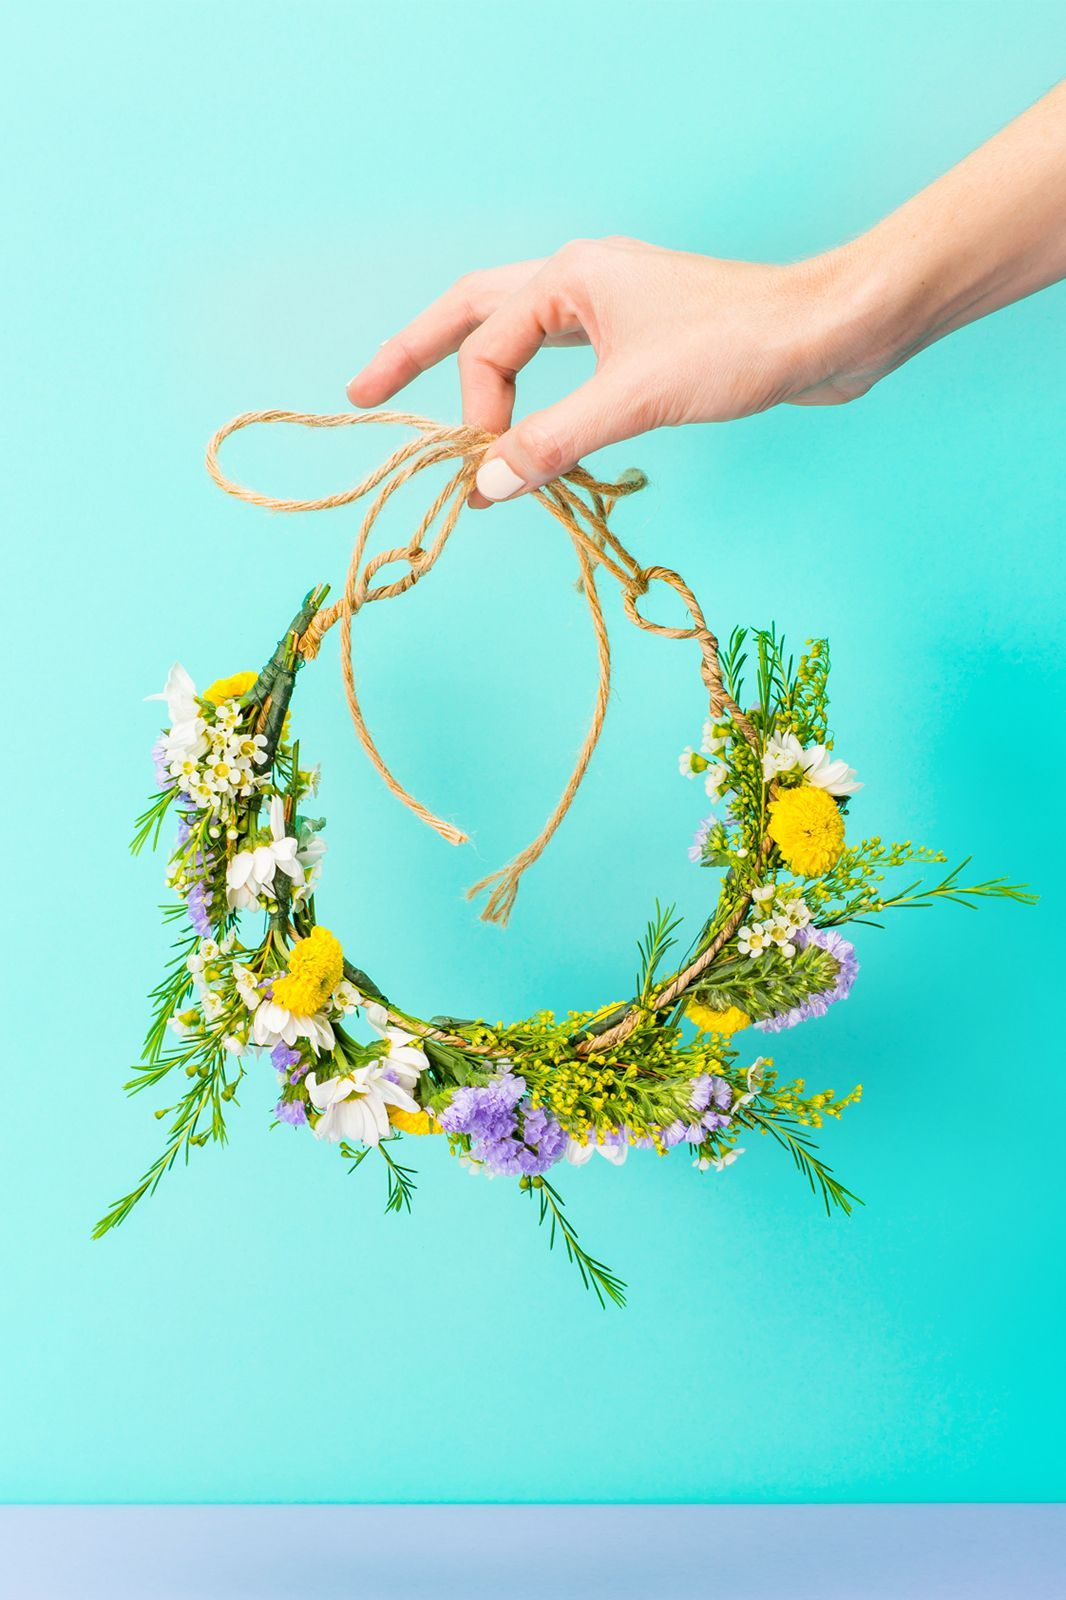 How To Make A Stunning Flower Crown In Under 20 Minutes Out Of The